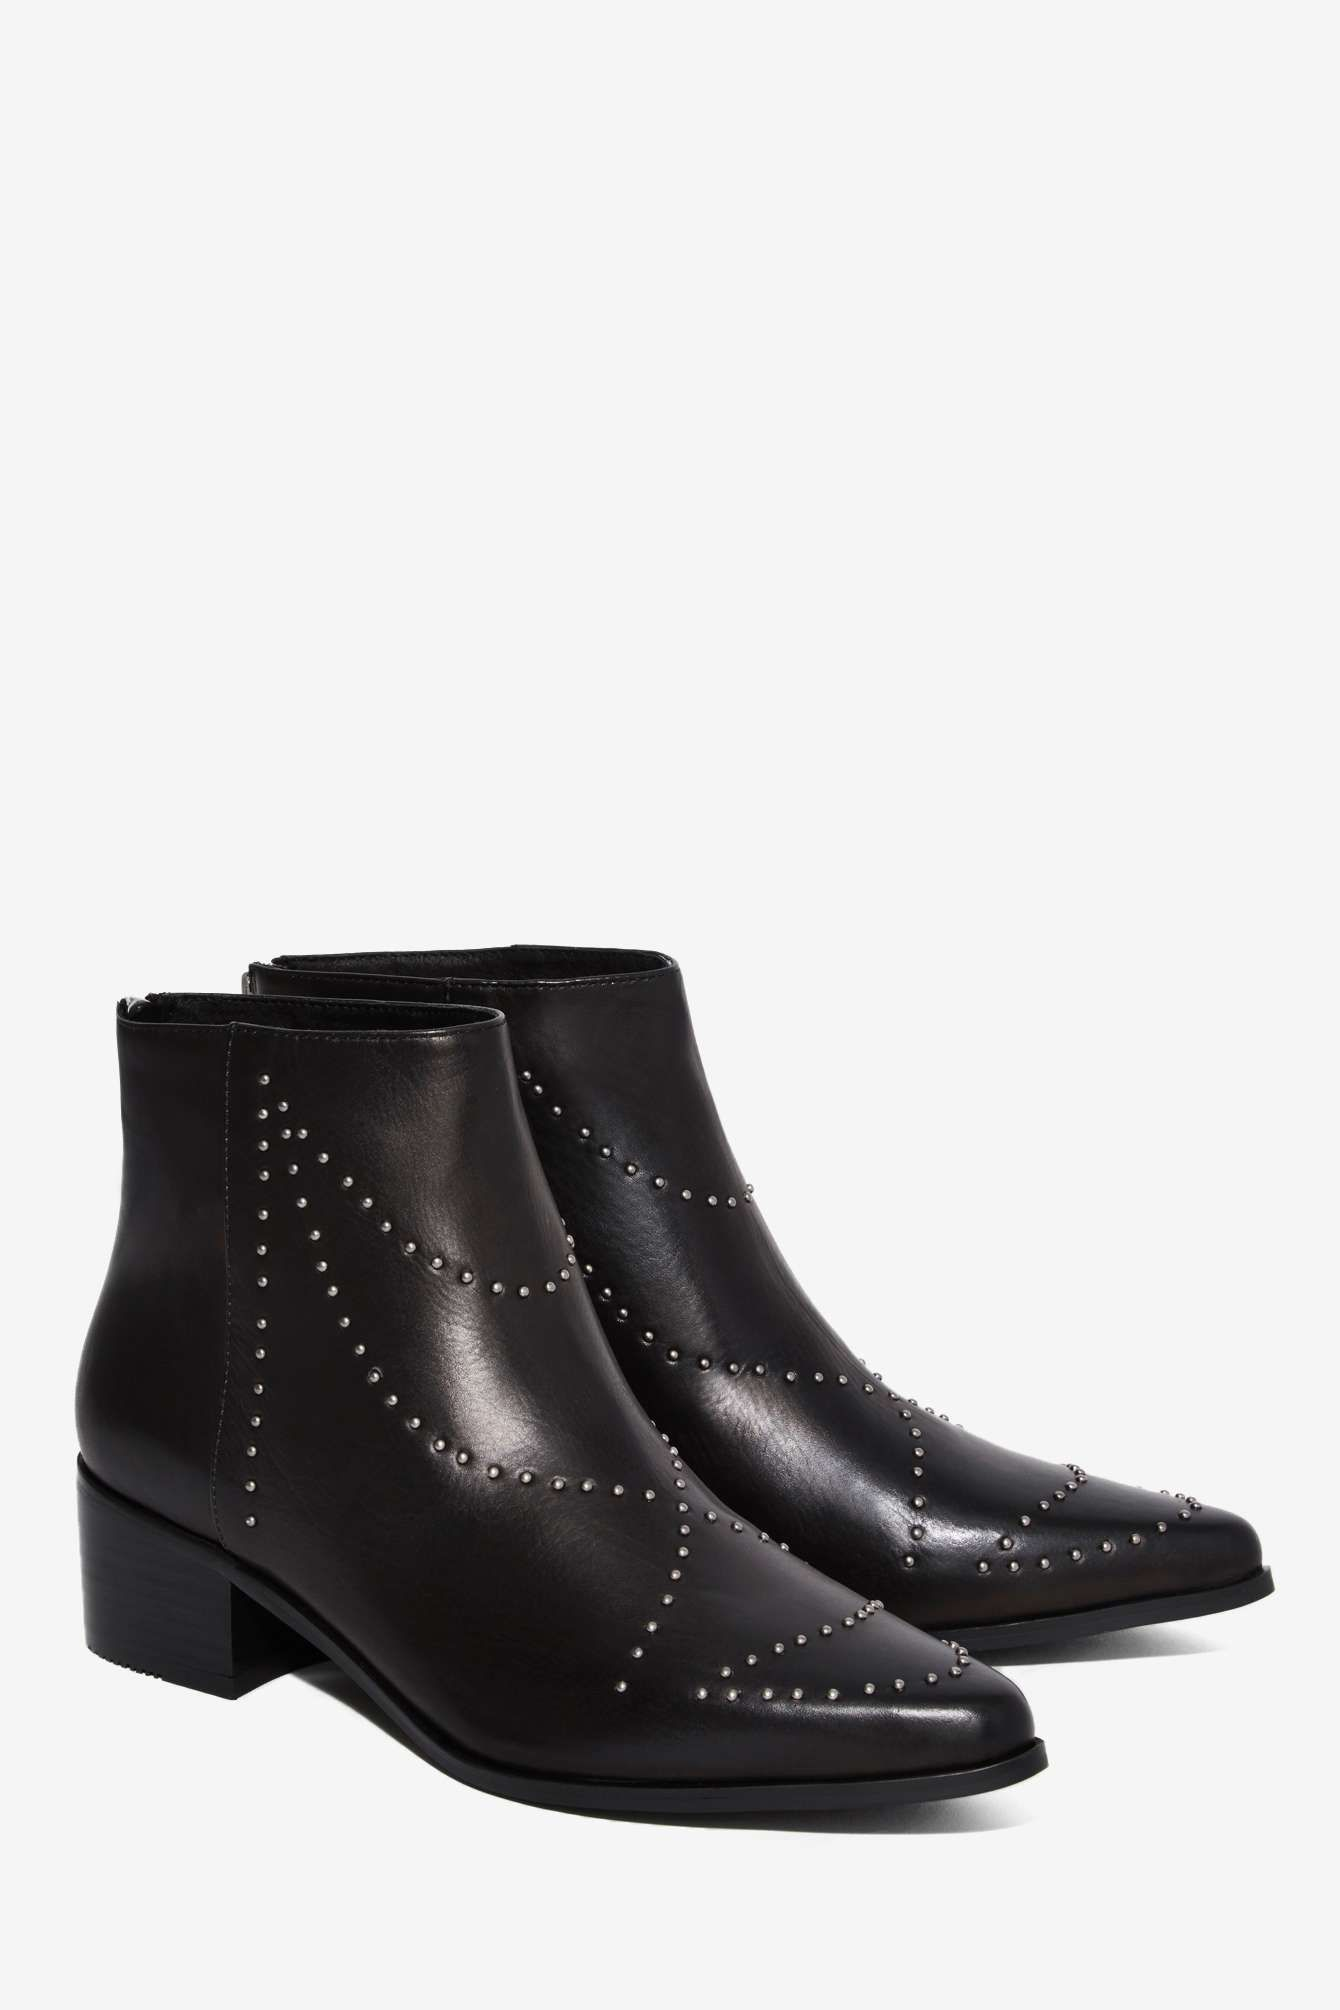 Grey City Wendy Studded Leather Ankle Boot | Shop Shoes at Nasty Gal!